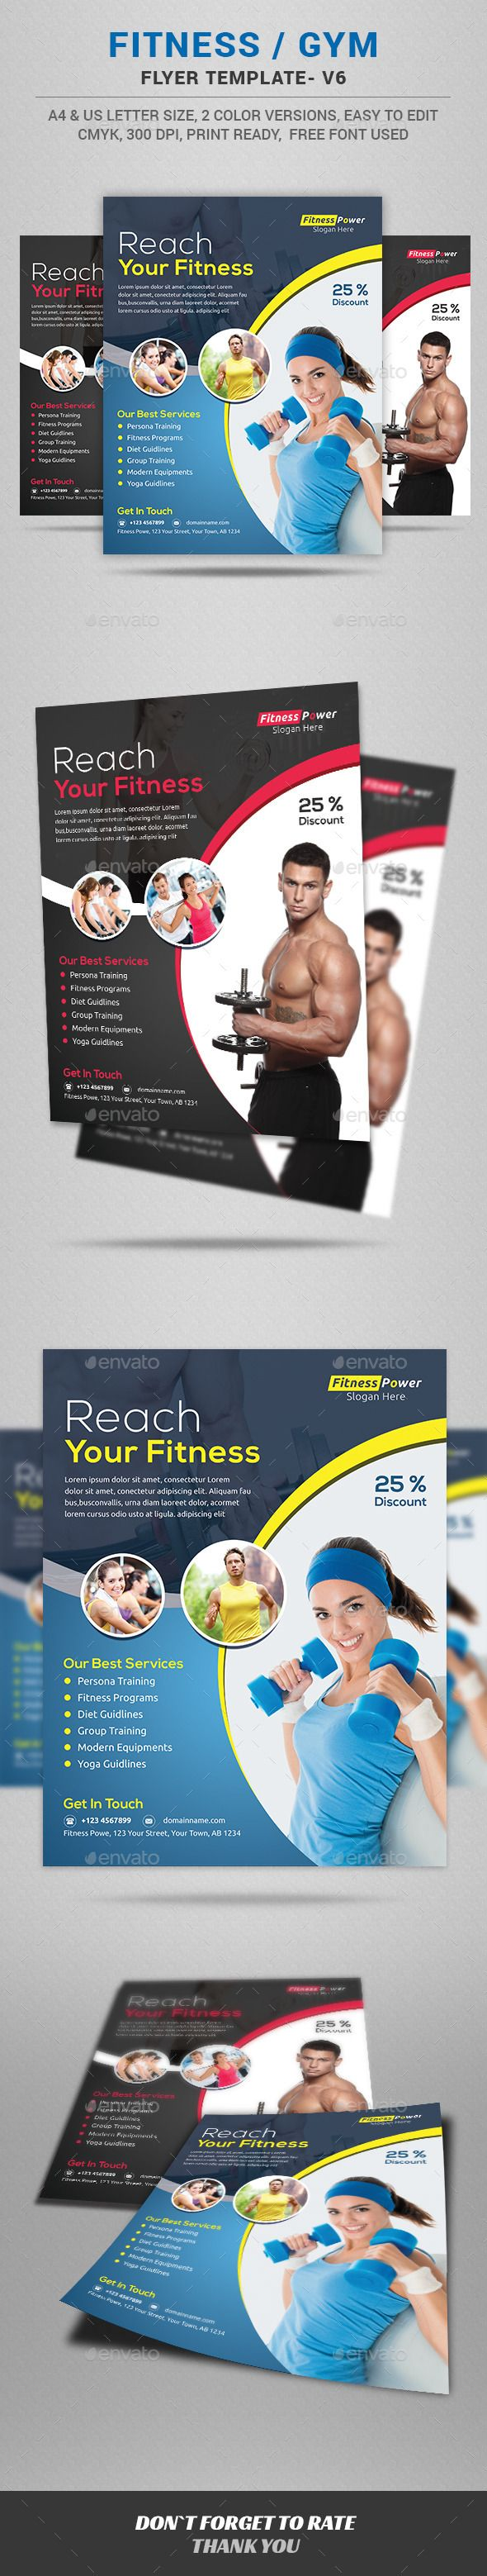 Fitness / Gym Flyer Template #design Download: http://graphicriver.net/item/fitness-gym-flyer-template/12661858?ref=ksioks